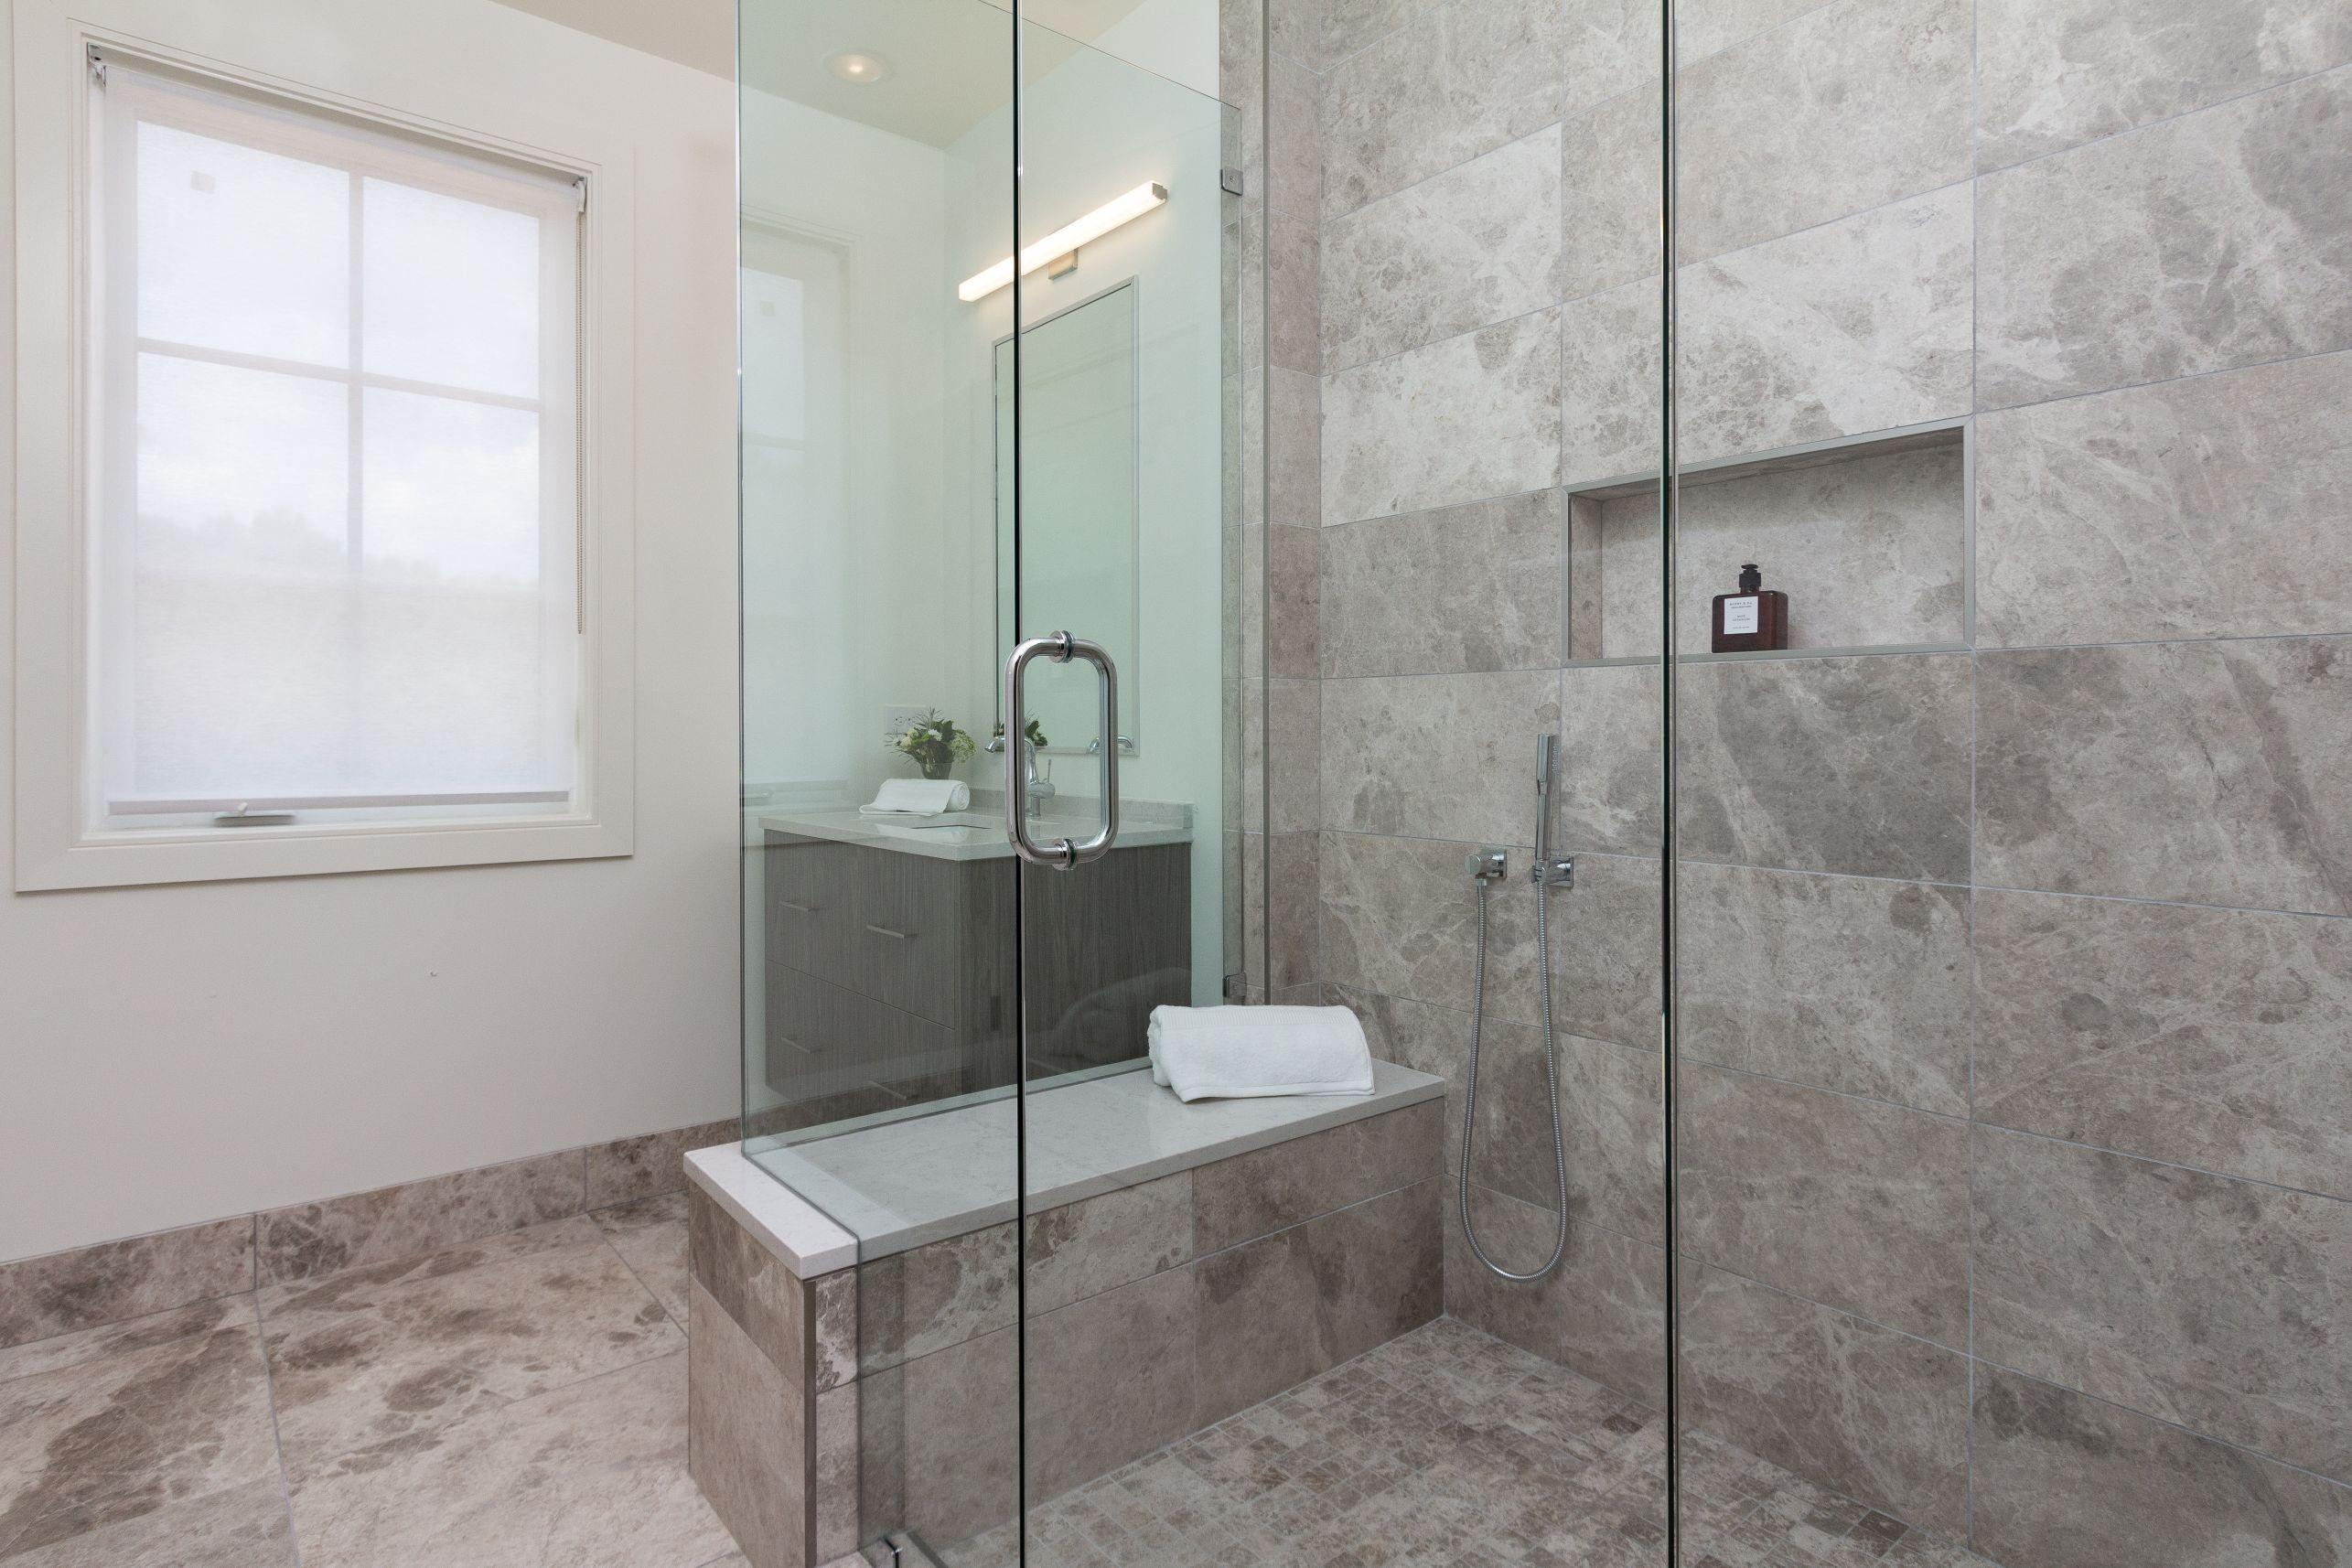 Bathroom featured in the Townhome By Minerva Homes in Atlanta, GA